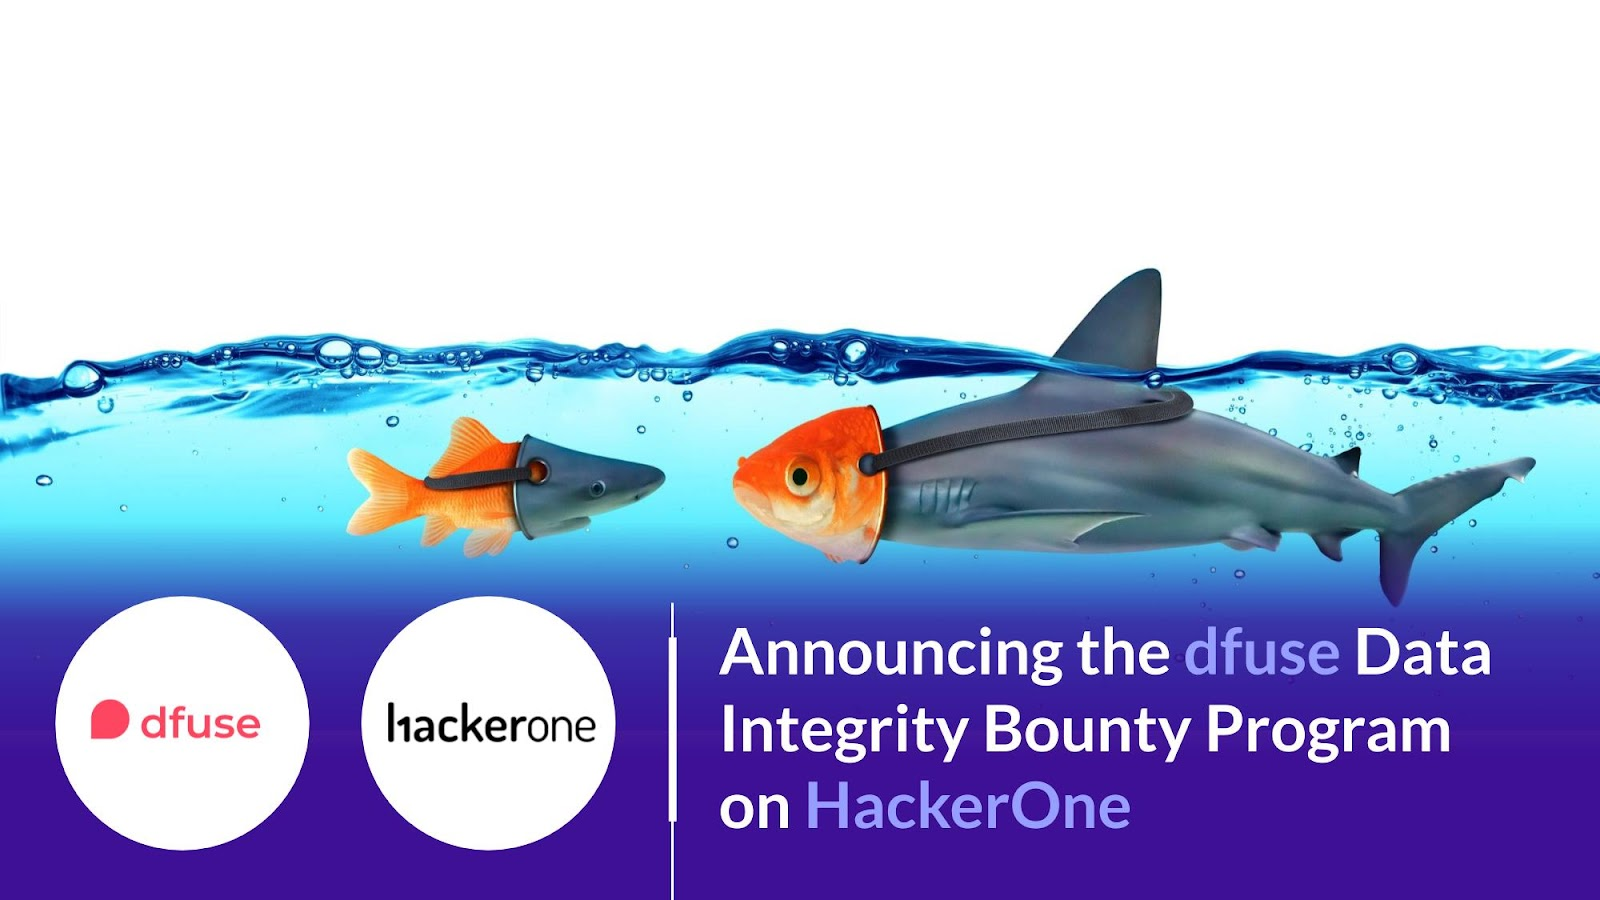 Announcing the dfuse Data Integrity Bounty Program on HackerOne